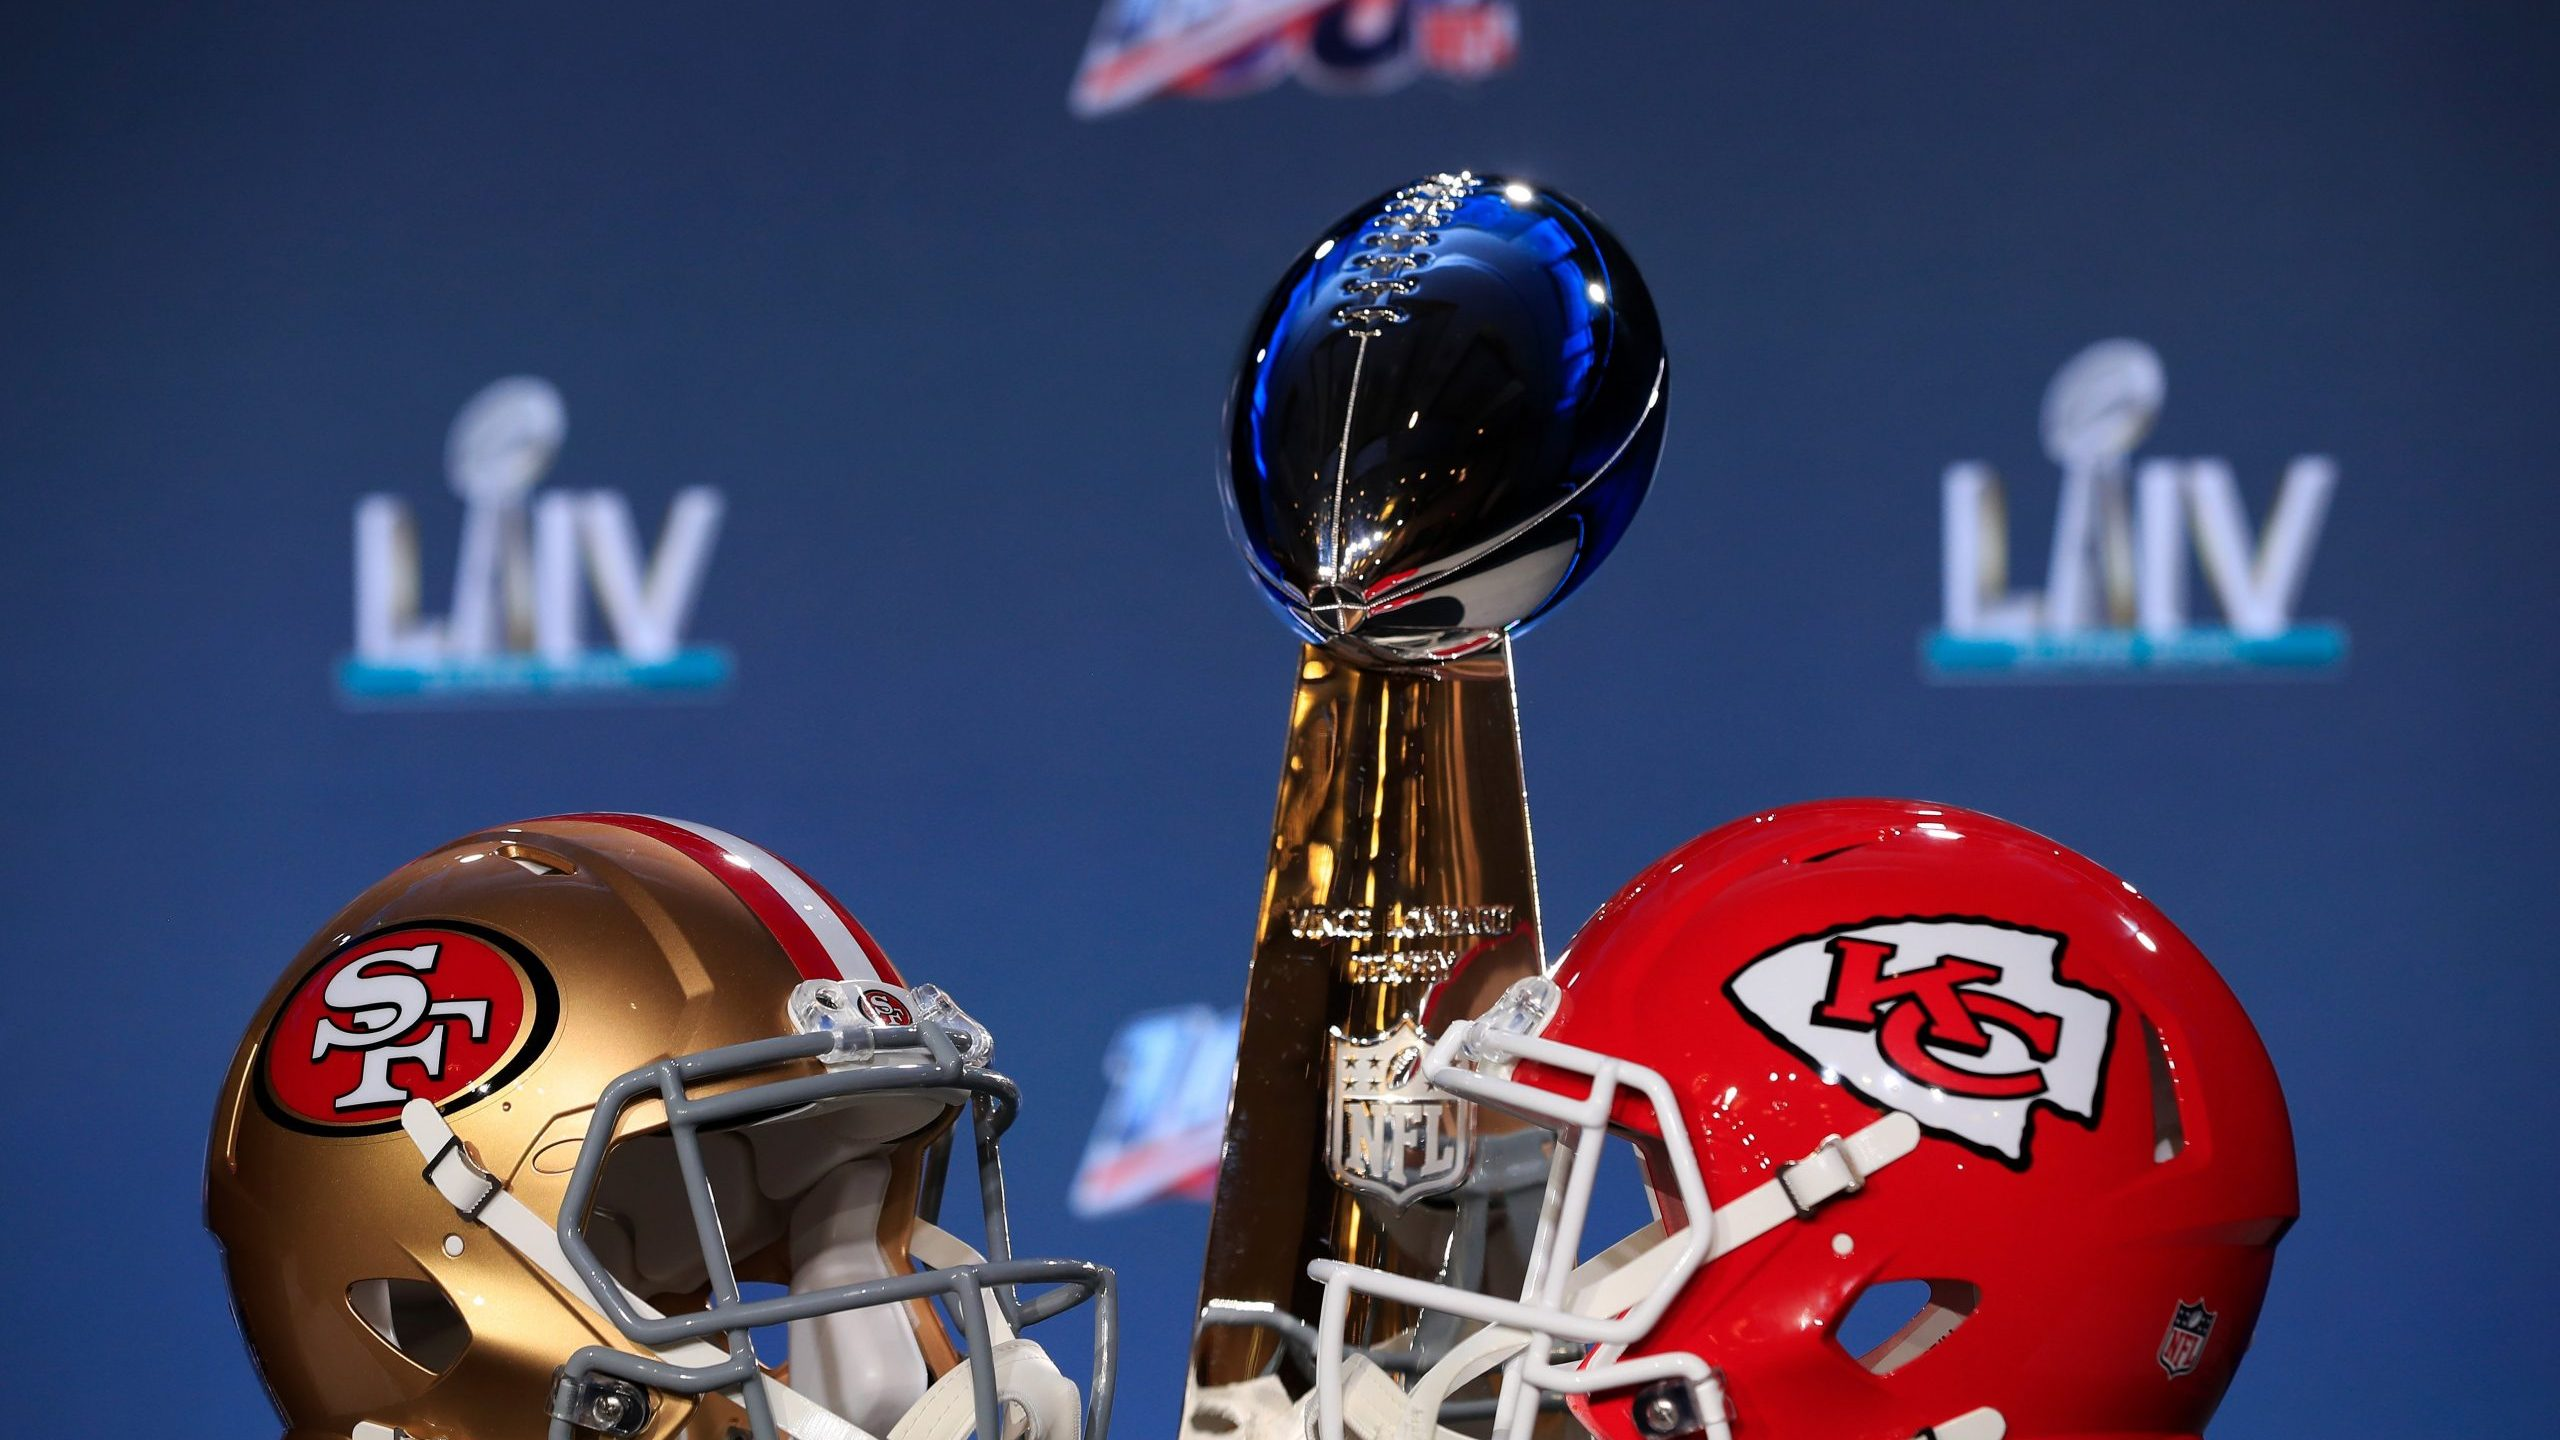 The Vince Lombardi Trophy is displayed with helmets of the San Francisco 49ers and Kansas City Chiefs at the Hilton Miami Downtown on Jan. 29, 2020 in Miami, Florida. (Credit: Cliff Hawkins/Getty Images)